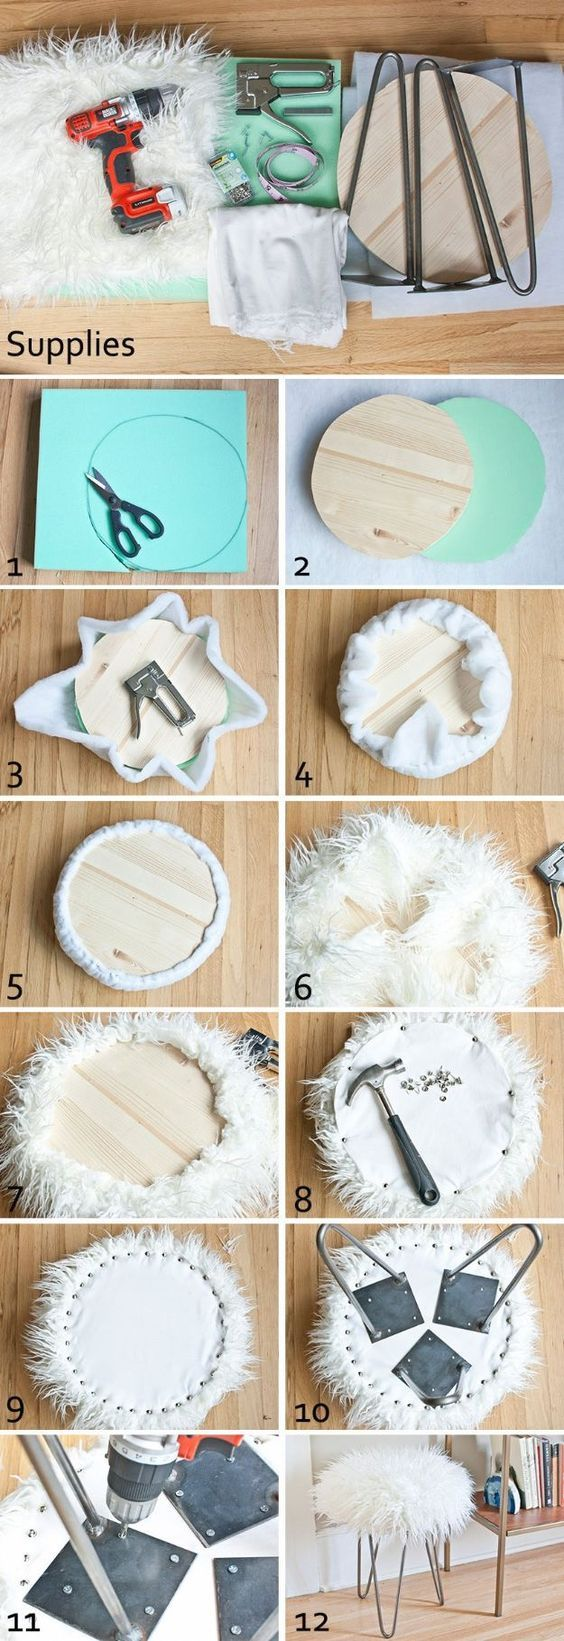 I love about 20 of these! Teenage, no, into these, yes. DIY Teen Room Decor Ideas for Girls | Faux Fur Stool with Hairpin Legs | Cool Bedroom Decor, Wall Art & Signs, Crafts, Bedding, Fun Do It Yourself Projects and Room Ideas for Small Spaces http://diyprojectsforteens.com/diy-teen-bedroom-ideas-girls